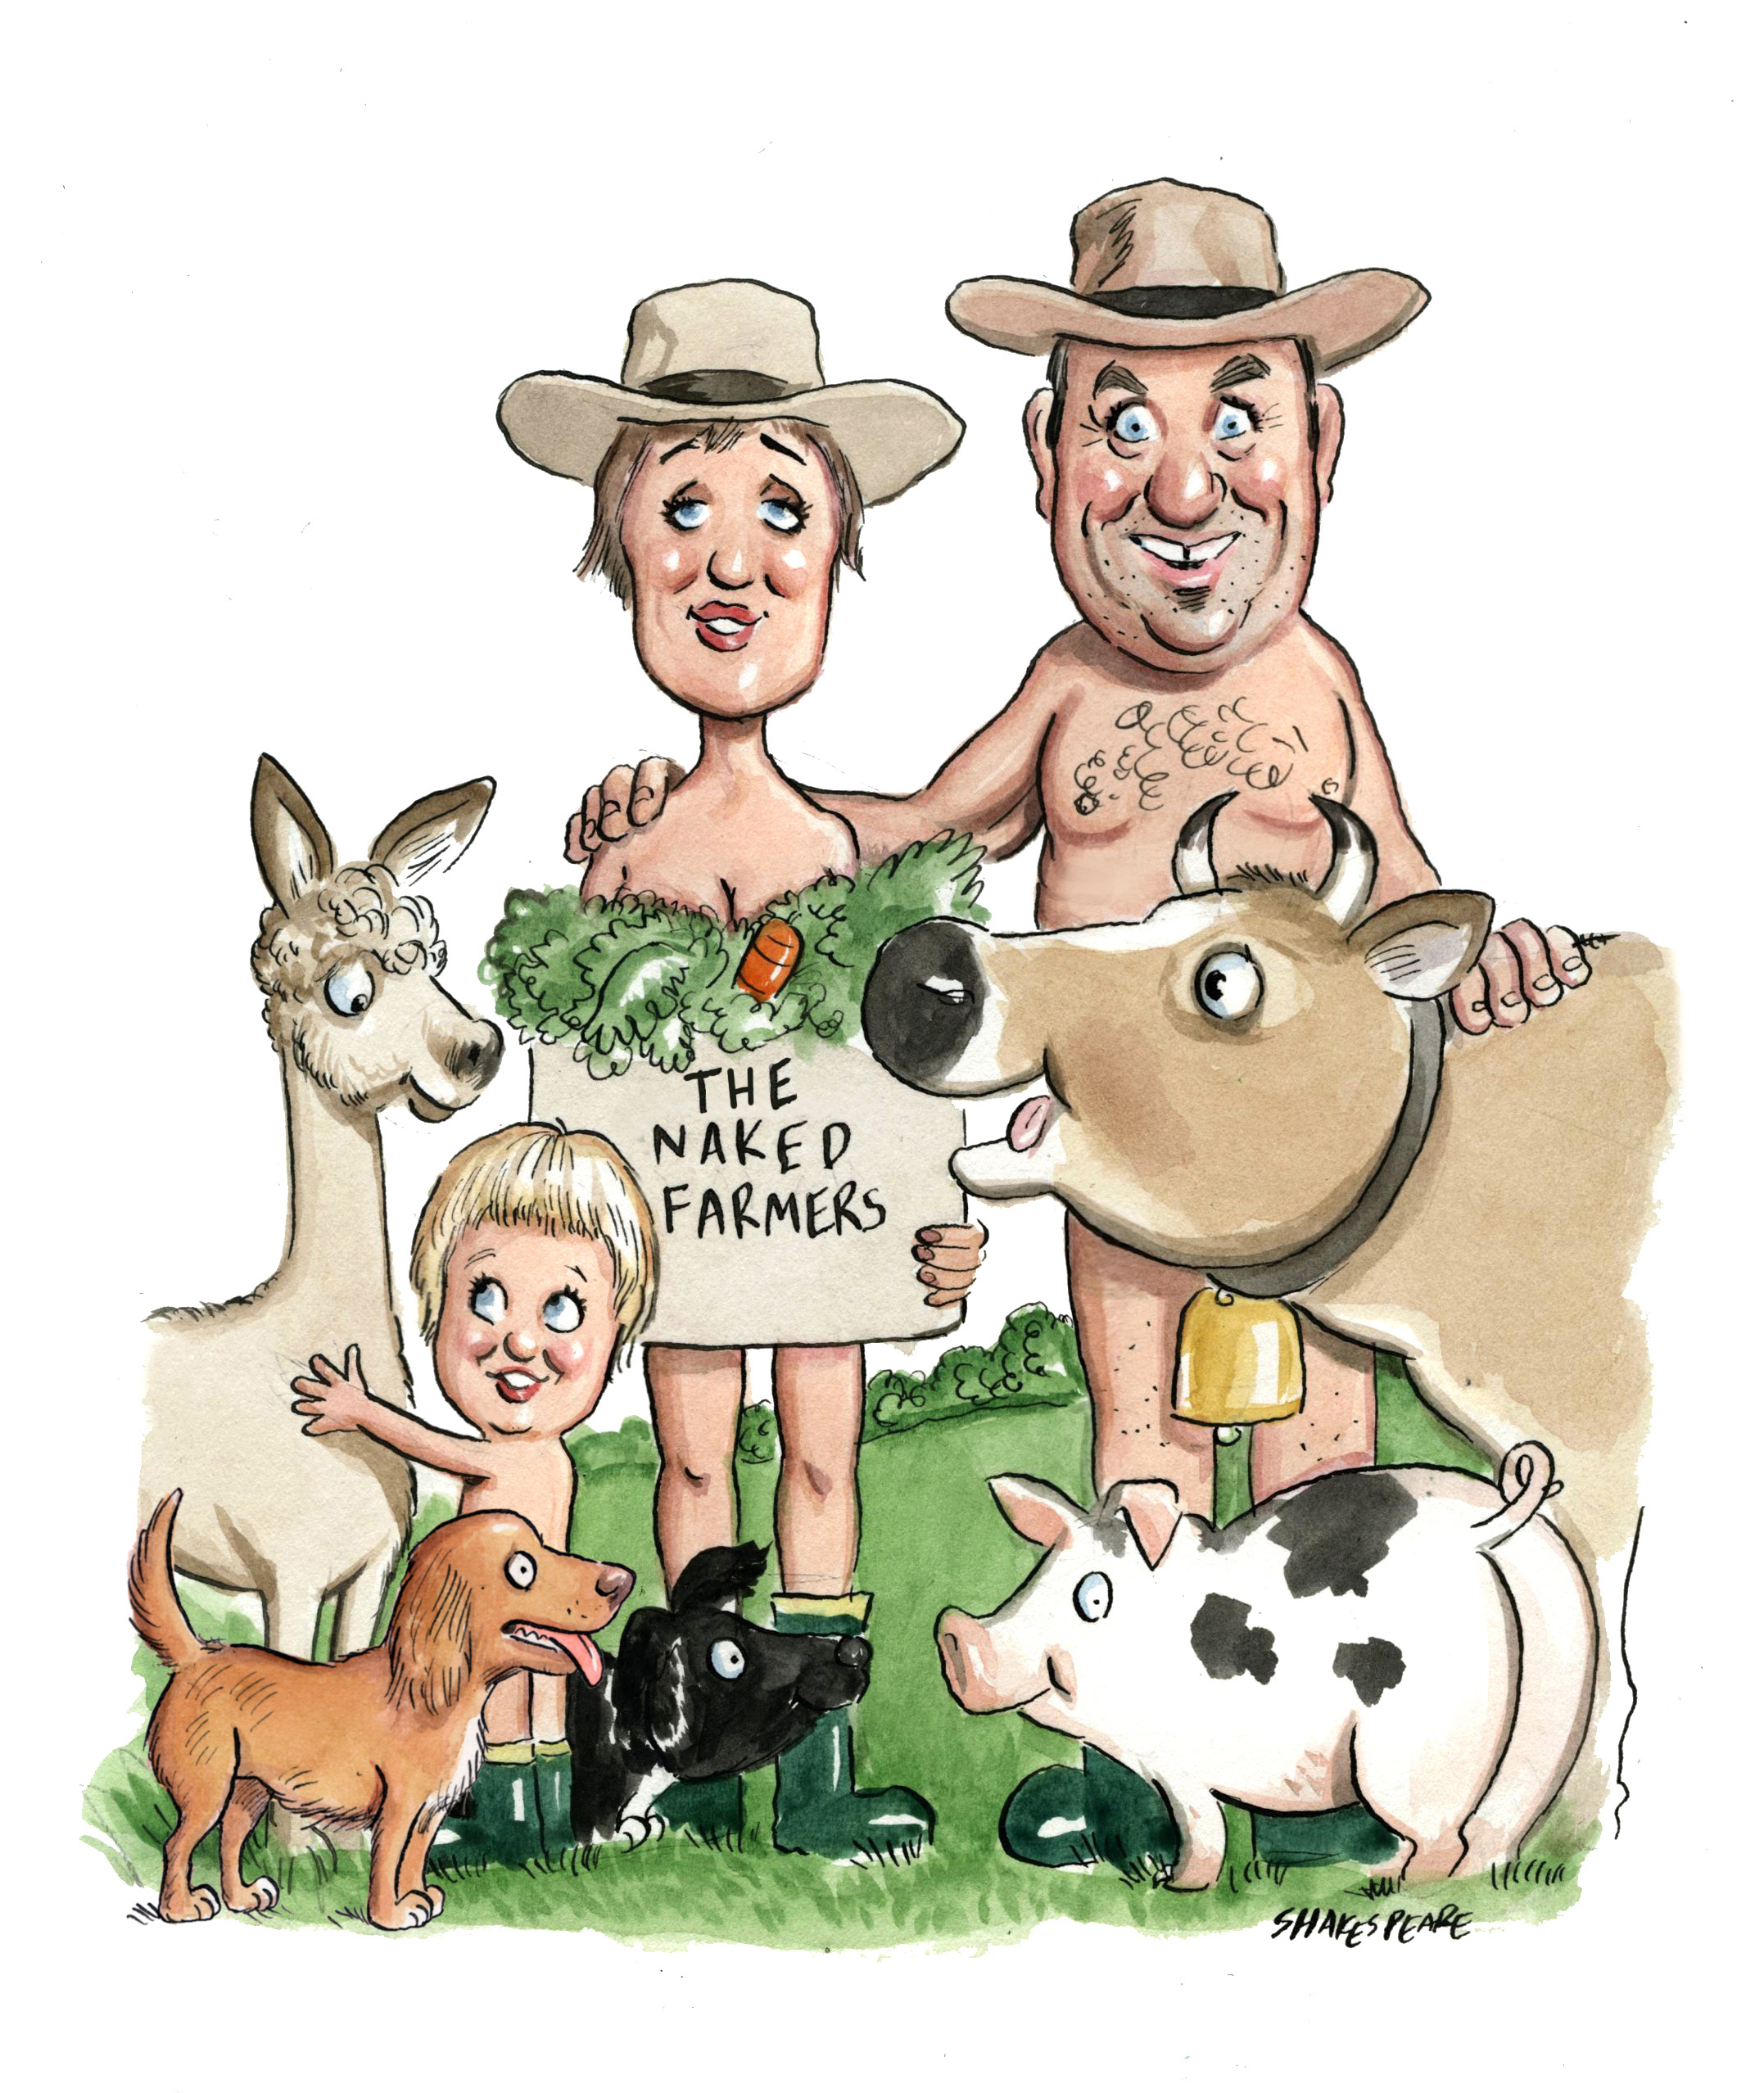 The Naked Farmers